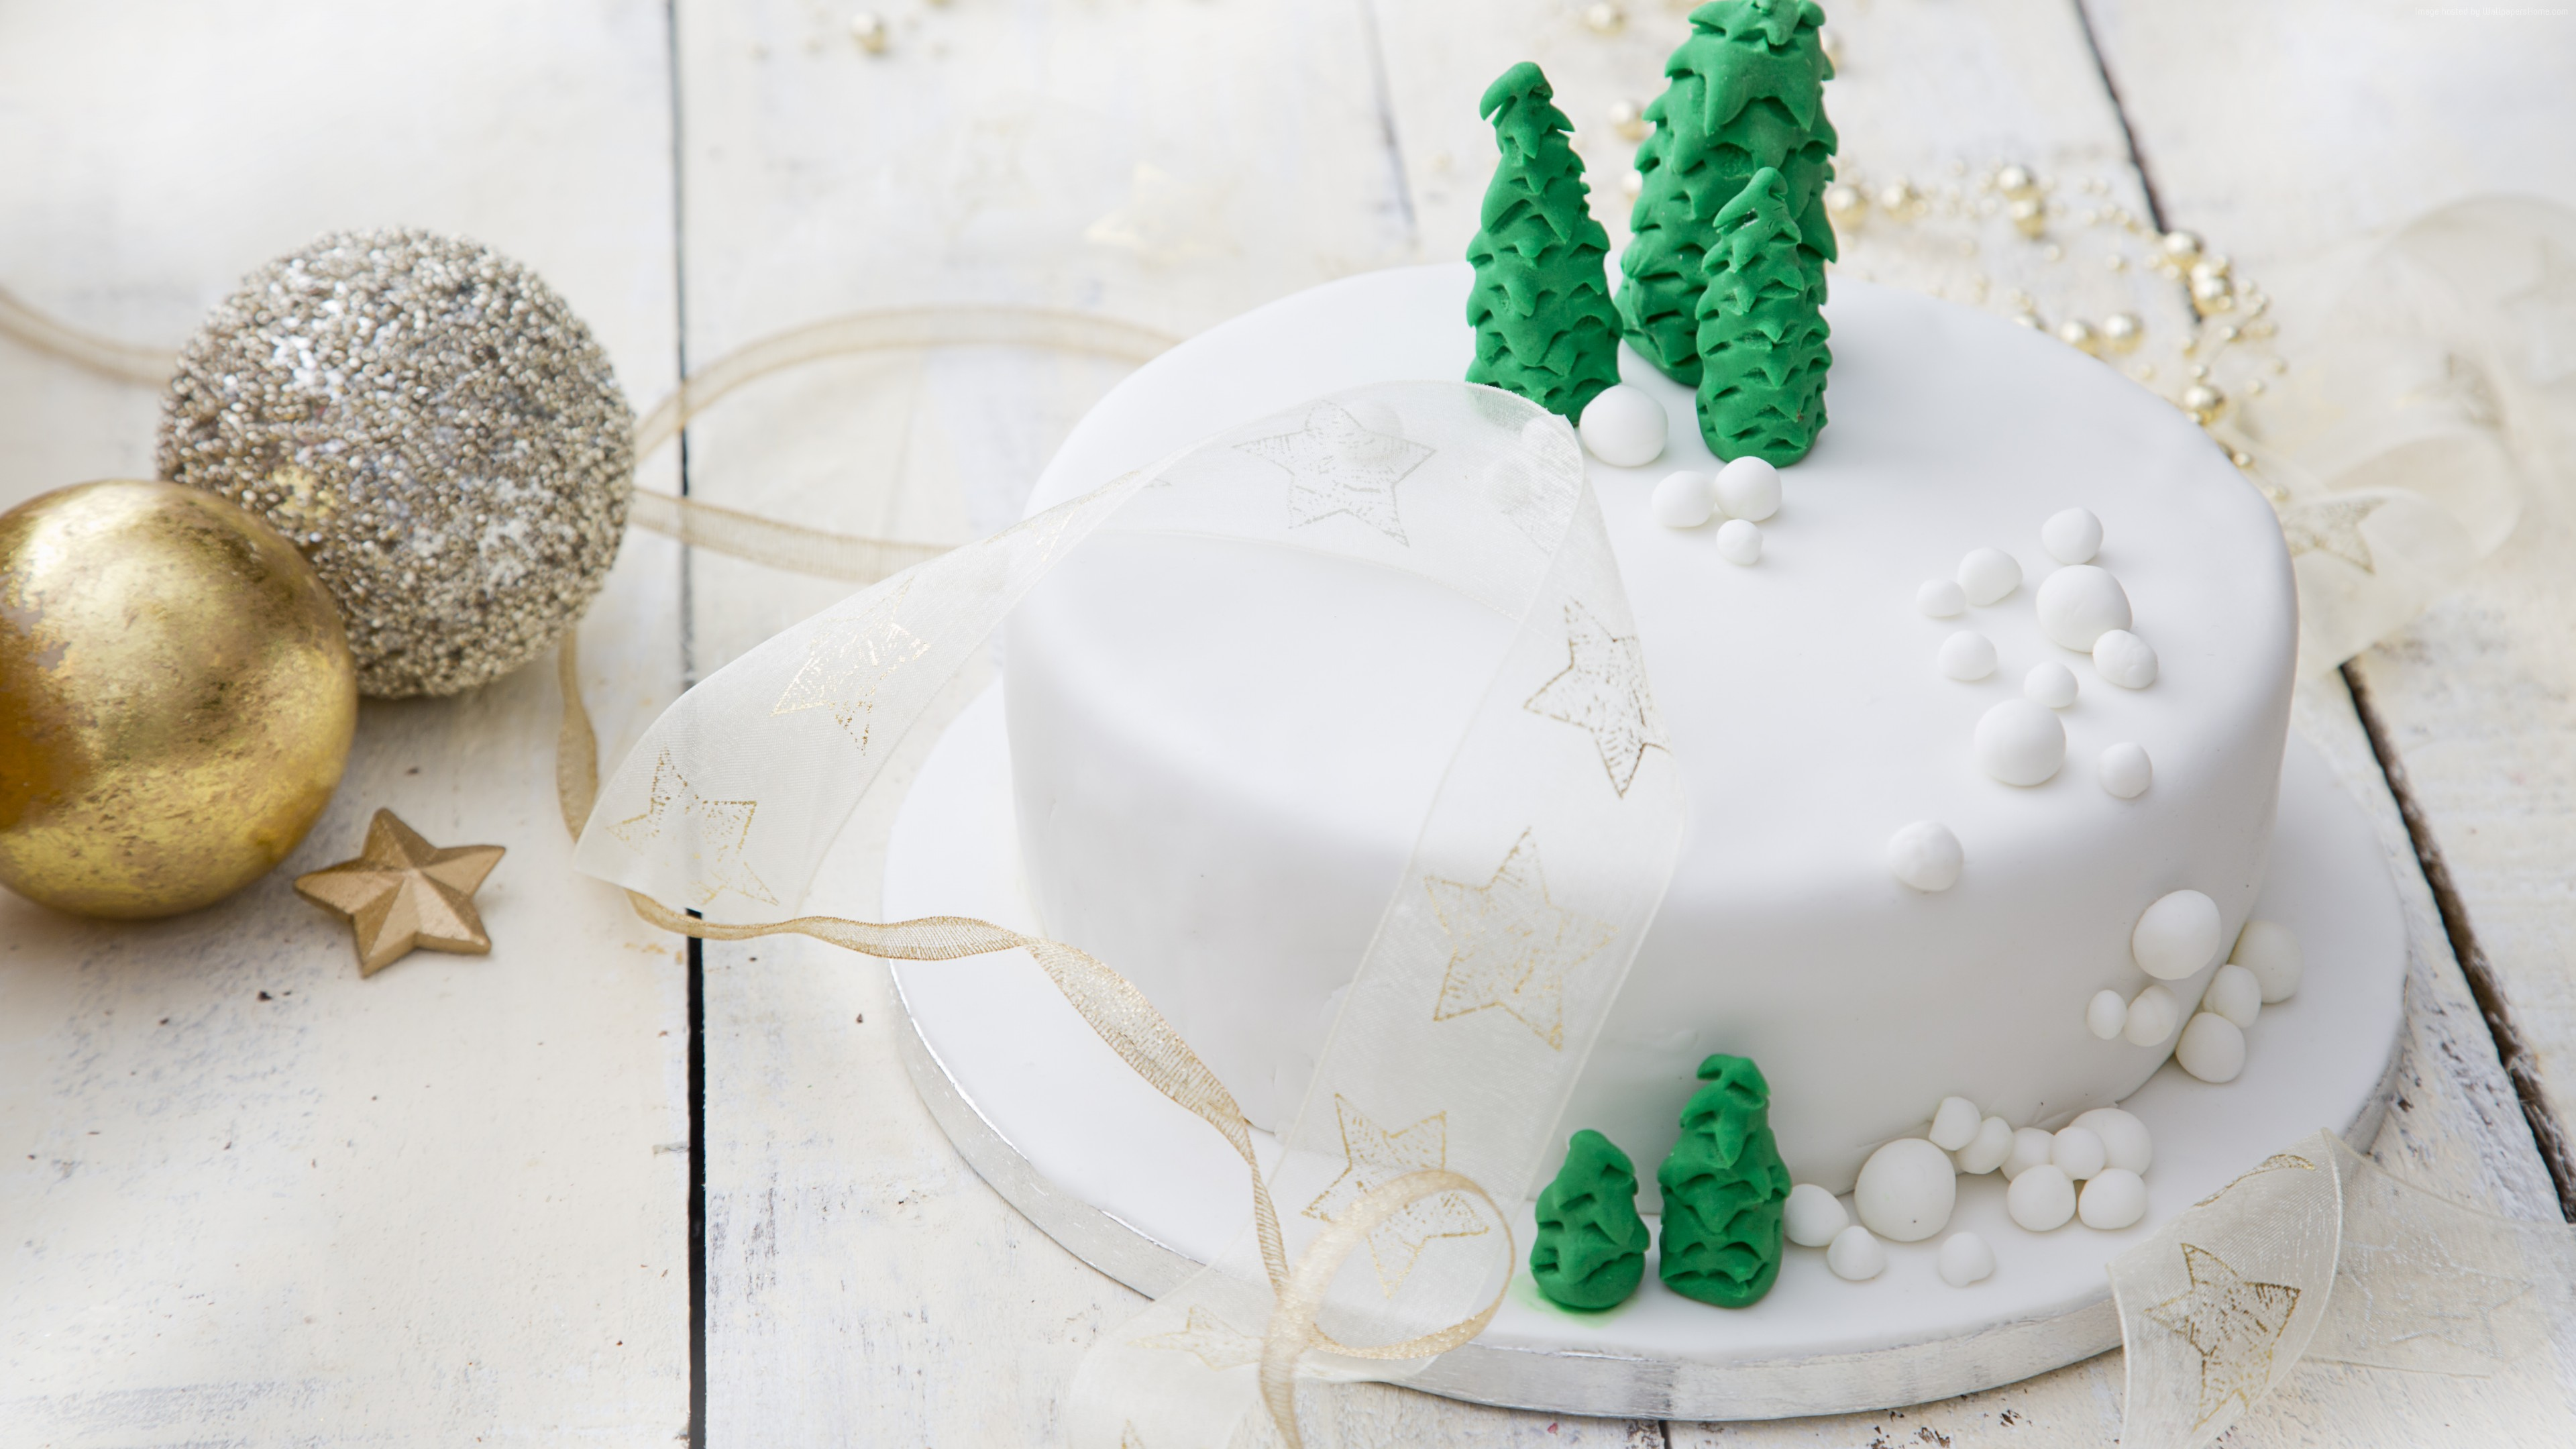 Wallpaper christmas cake, receipt, 5k, Food